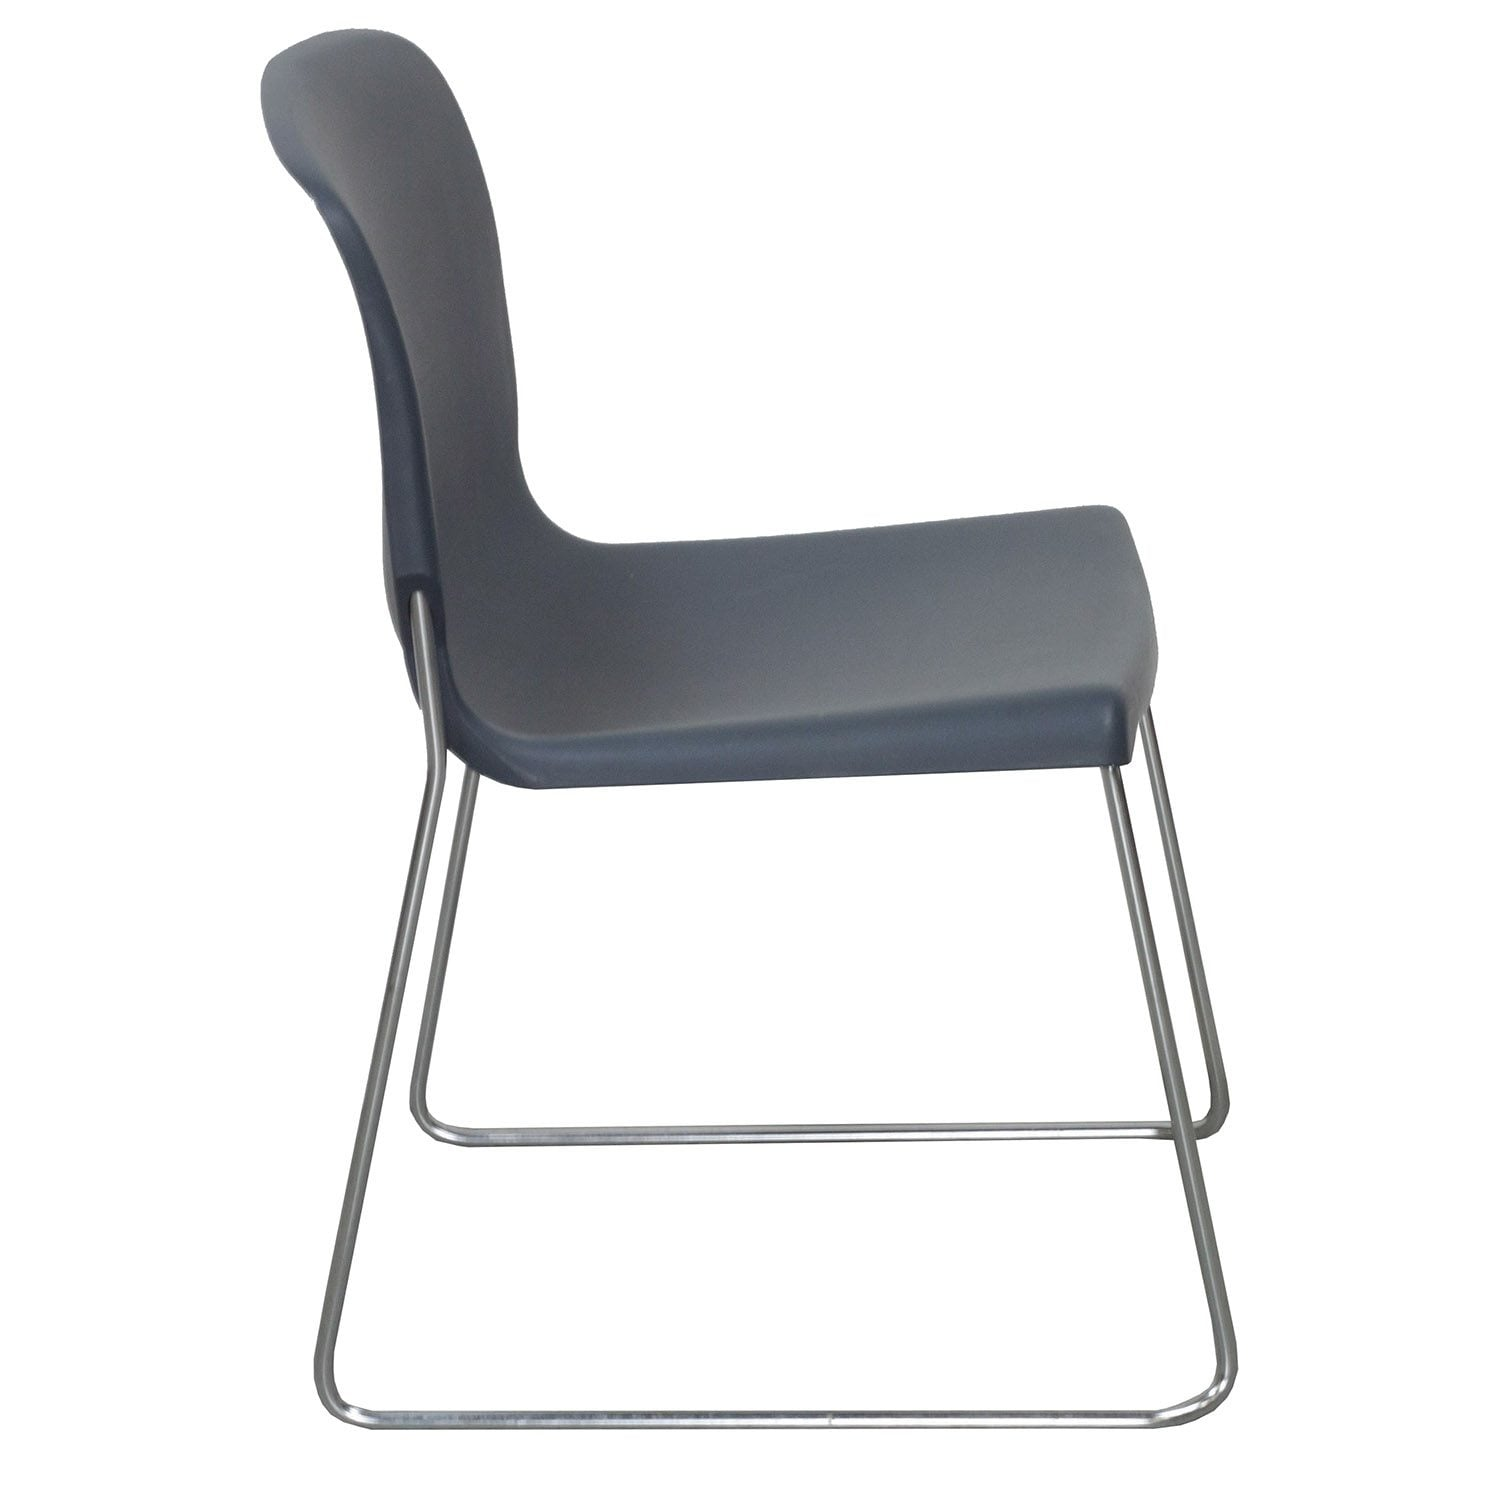 Fixtures Furniture D Used Stack Chair, Gray